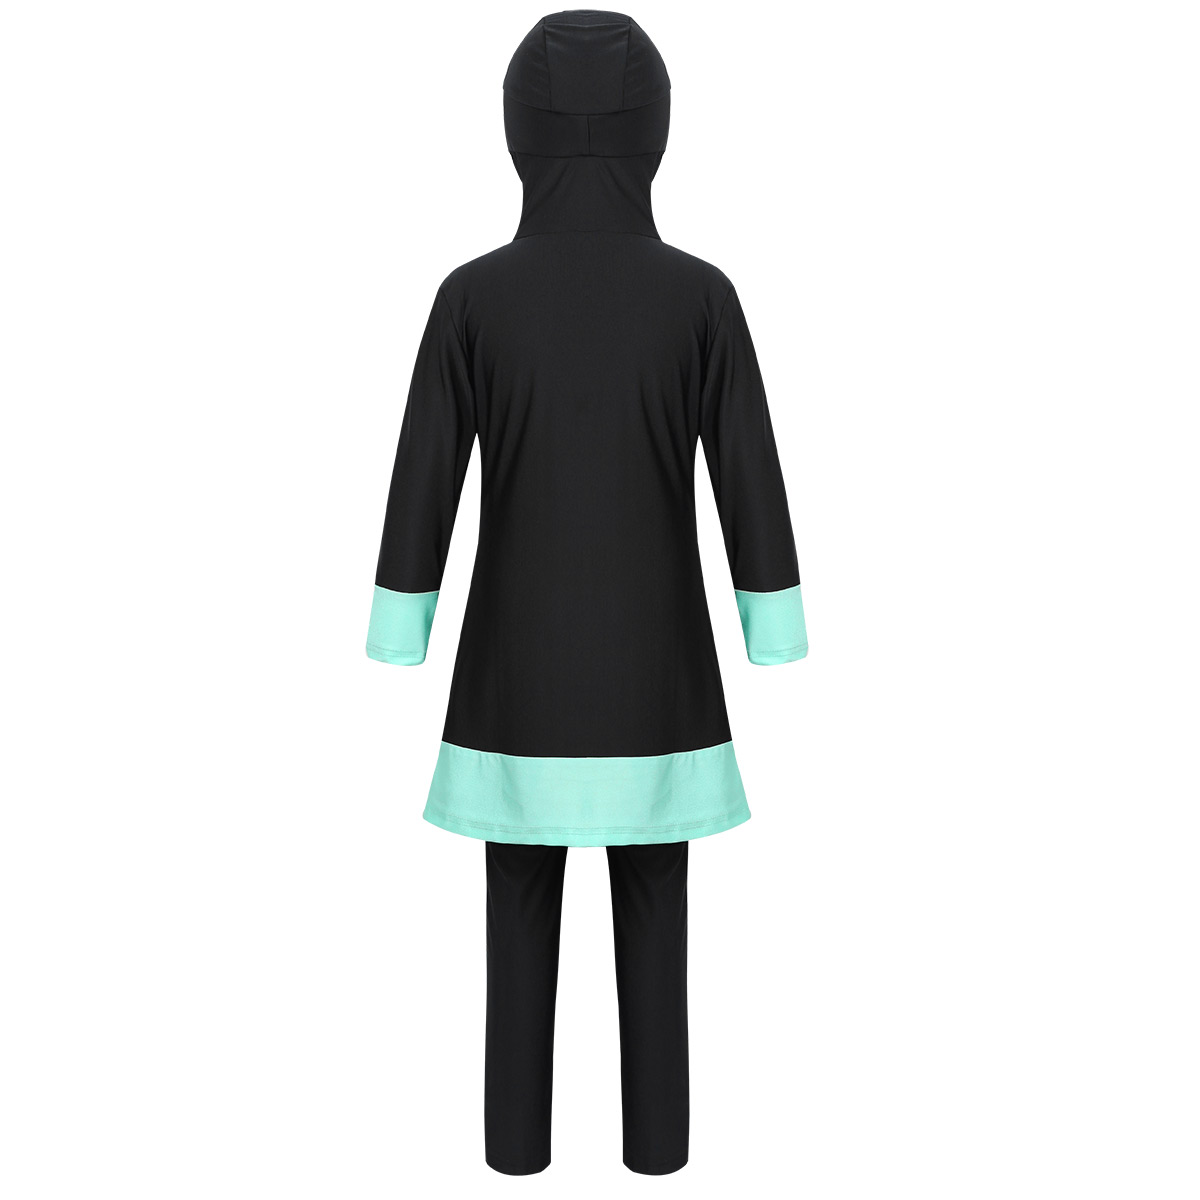 Image 3 - Kids Girls Long Sleeves Sweetheart Printed Full Cover Conservative Hijab Burkini Muslim Girls Kid Swimwear Swimsuit with Pants-in Clothing Sets from Mother & Kids